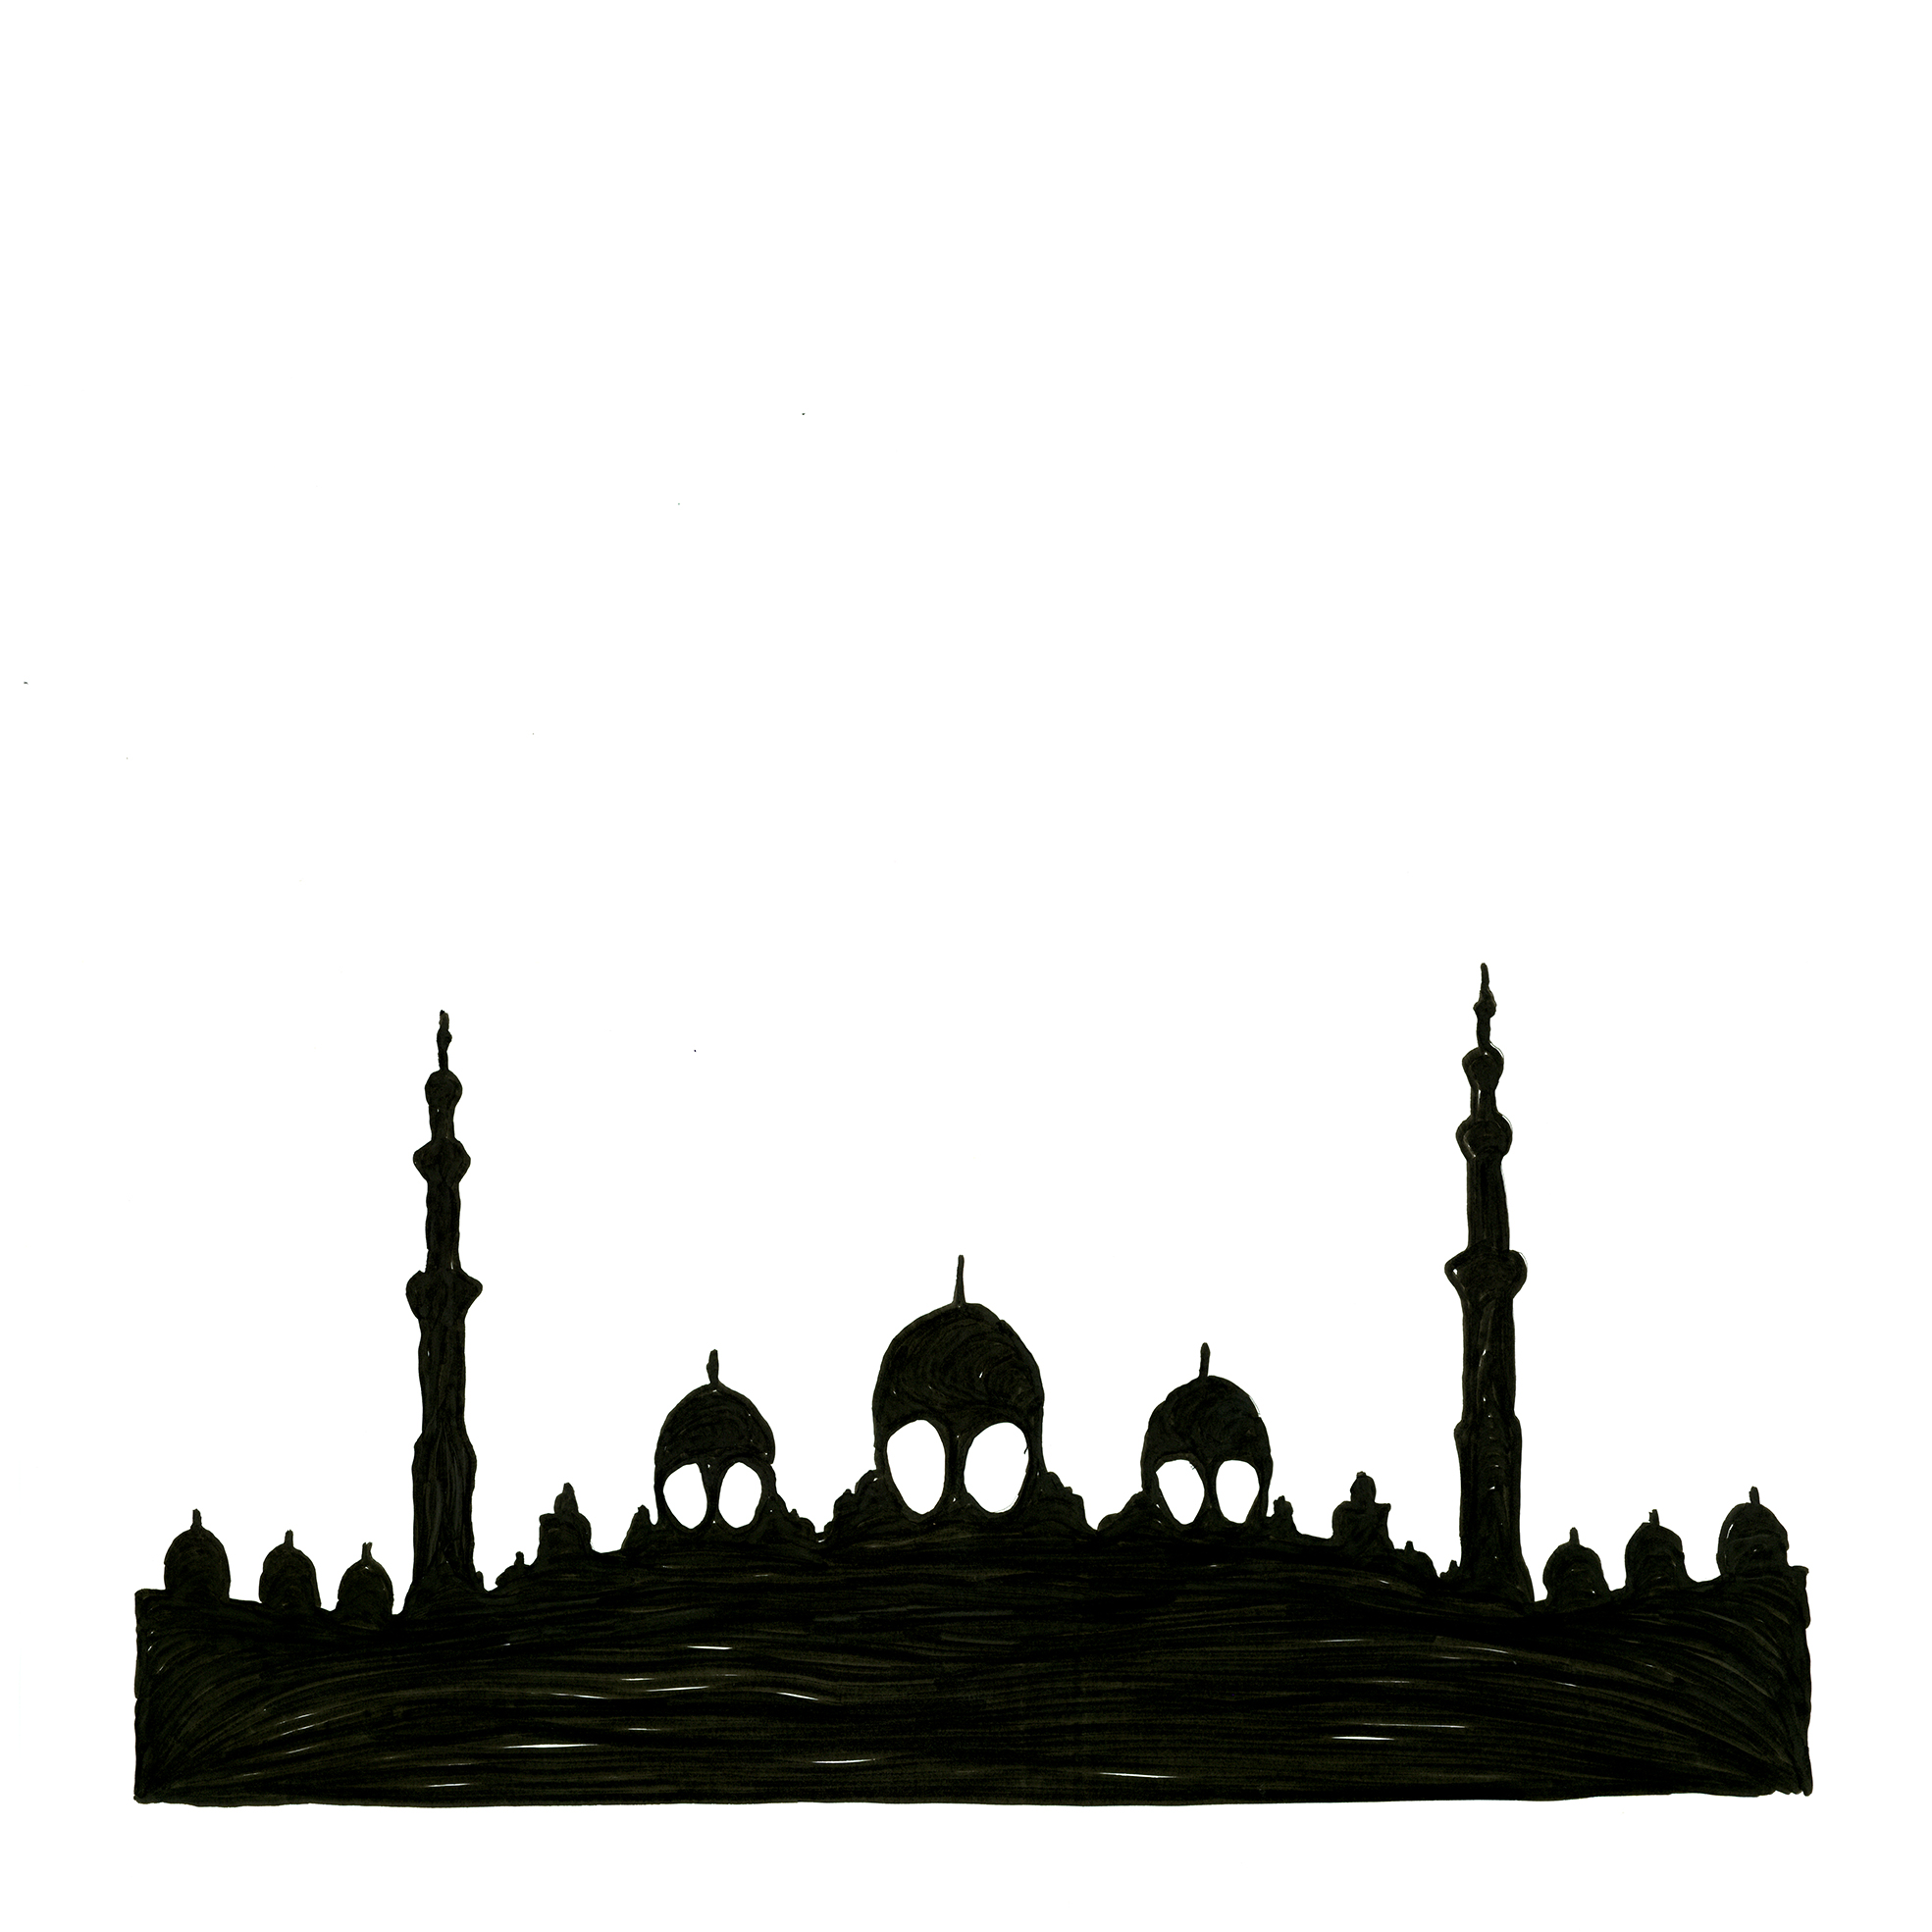 Sheikh Zayed's mosque